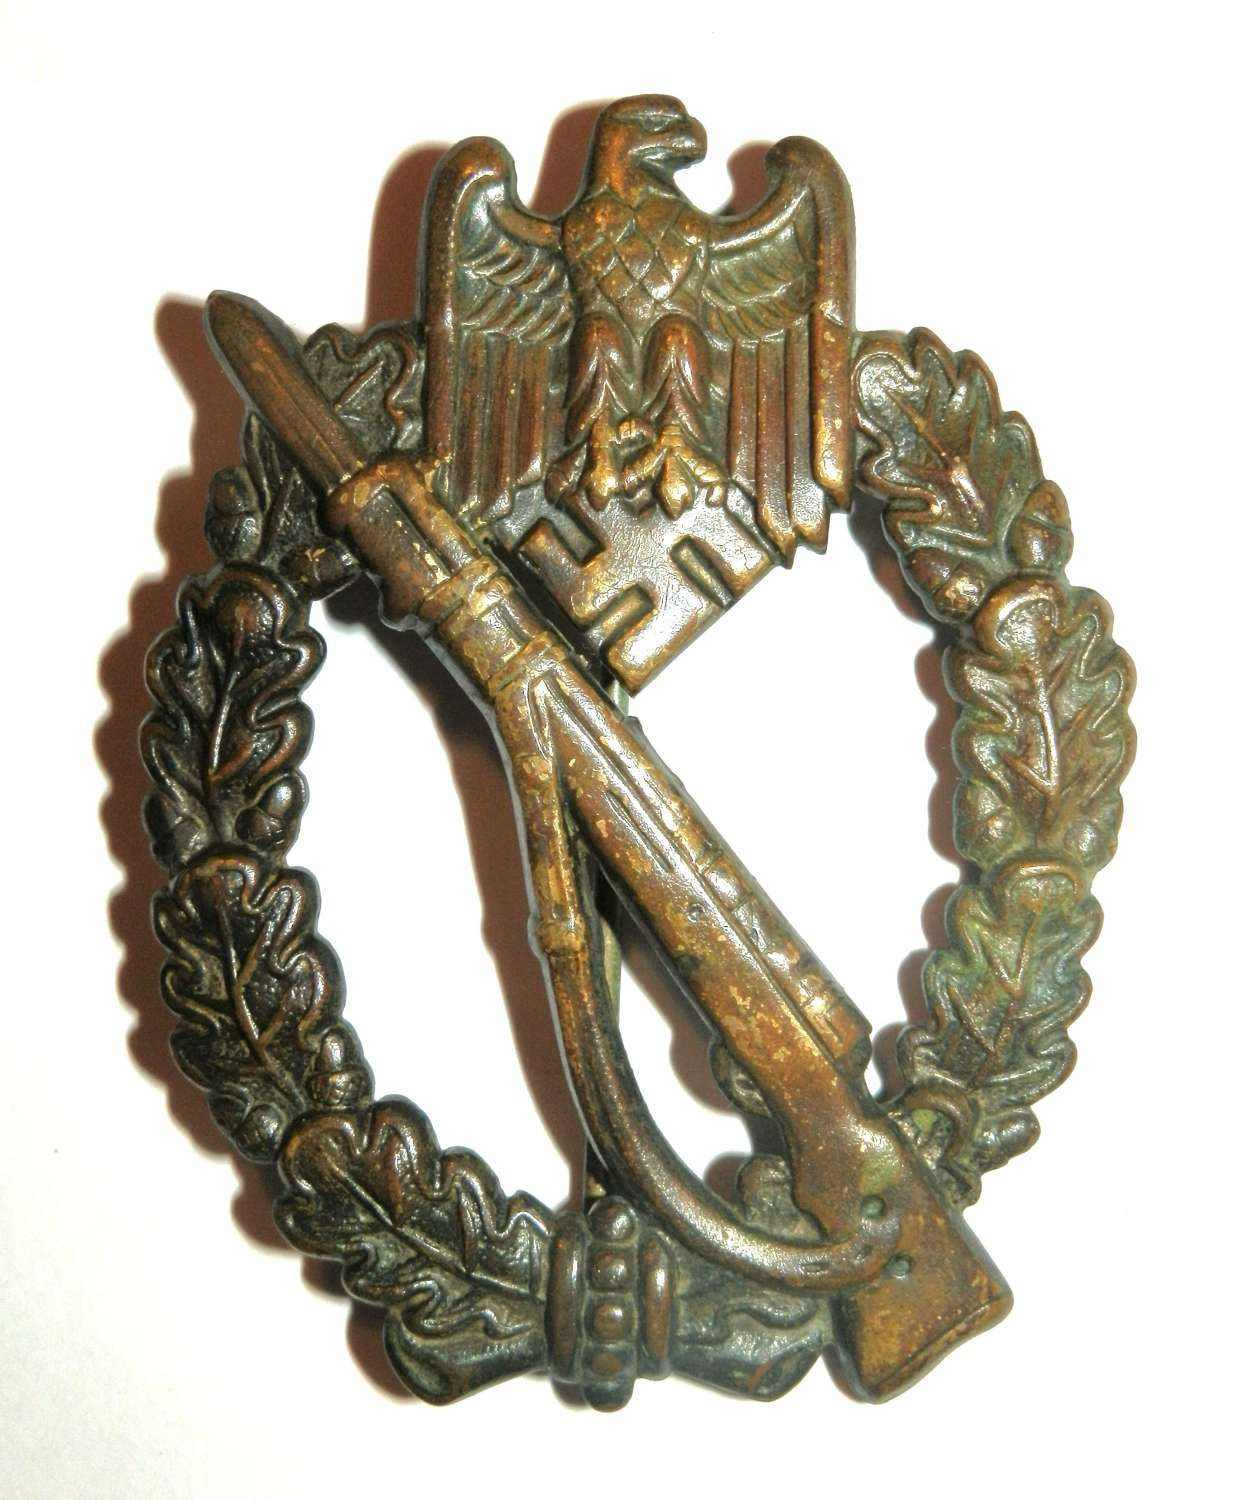 German Infantry Assault Badge. Attributed to B.H. Mayer's.